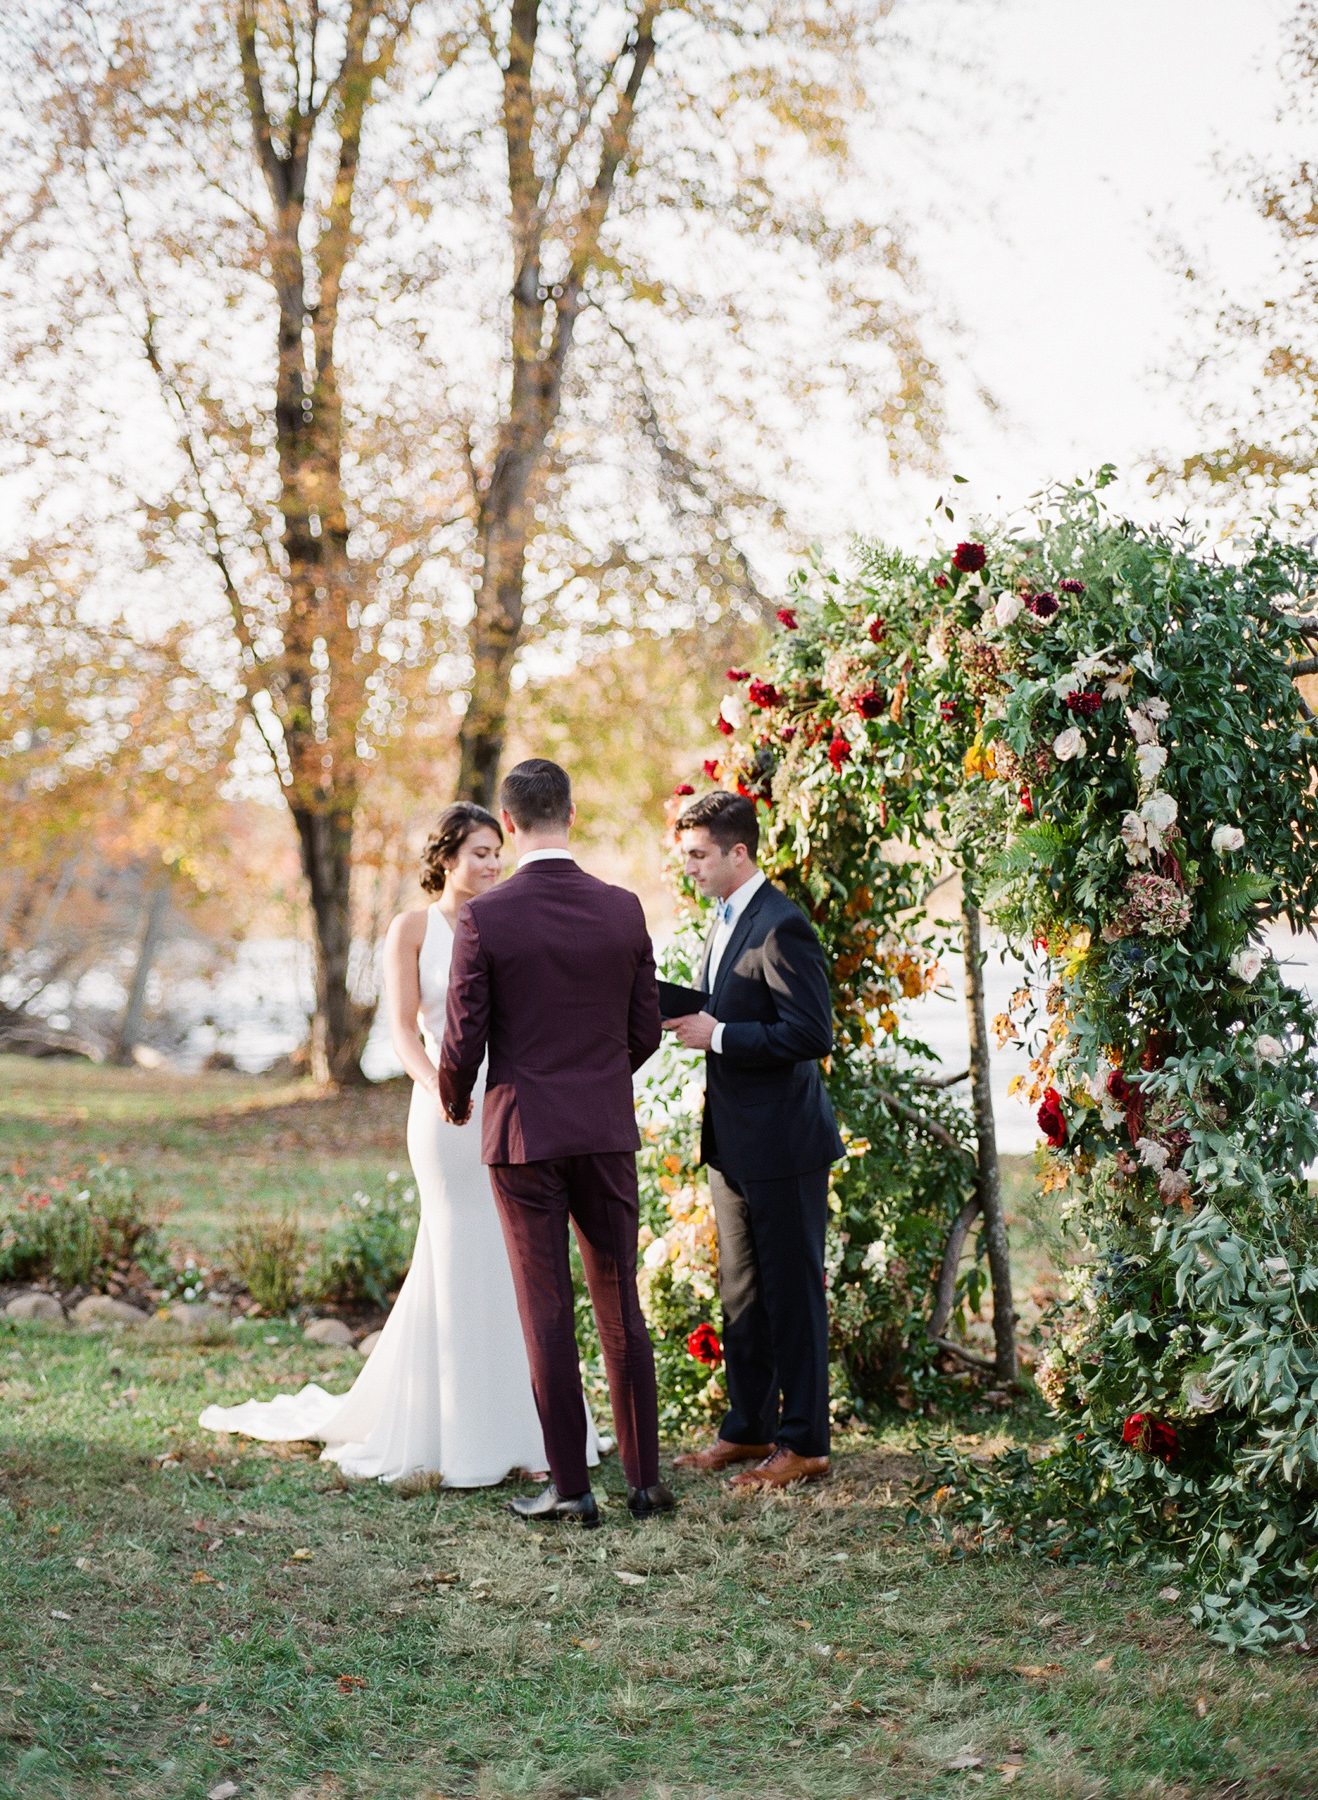 floral arch wedding ceremony backdrop by bride and groom